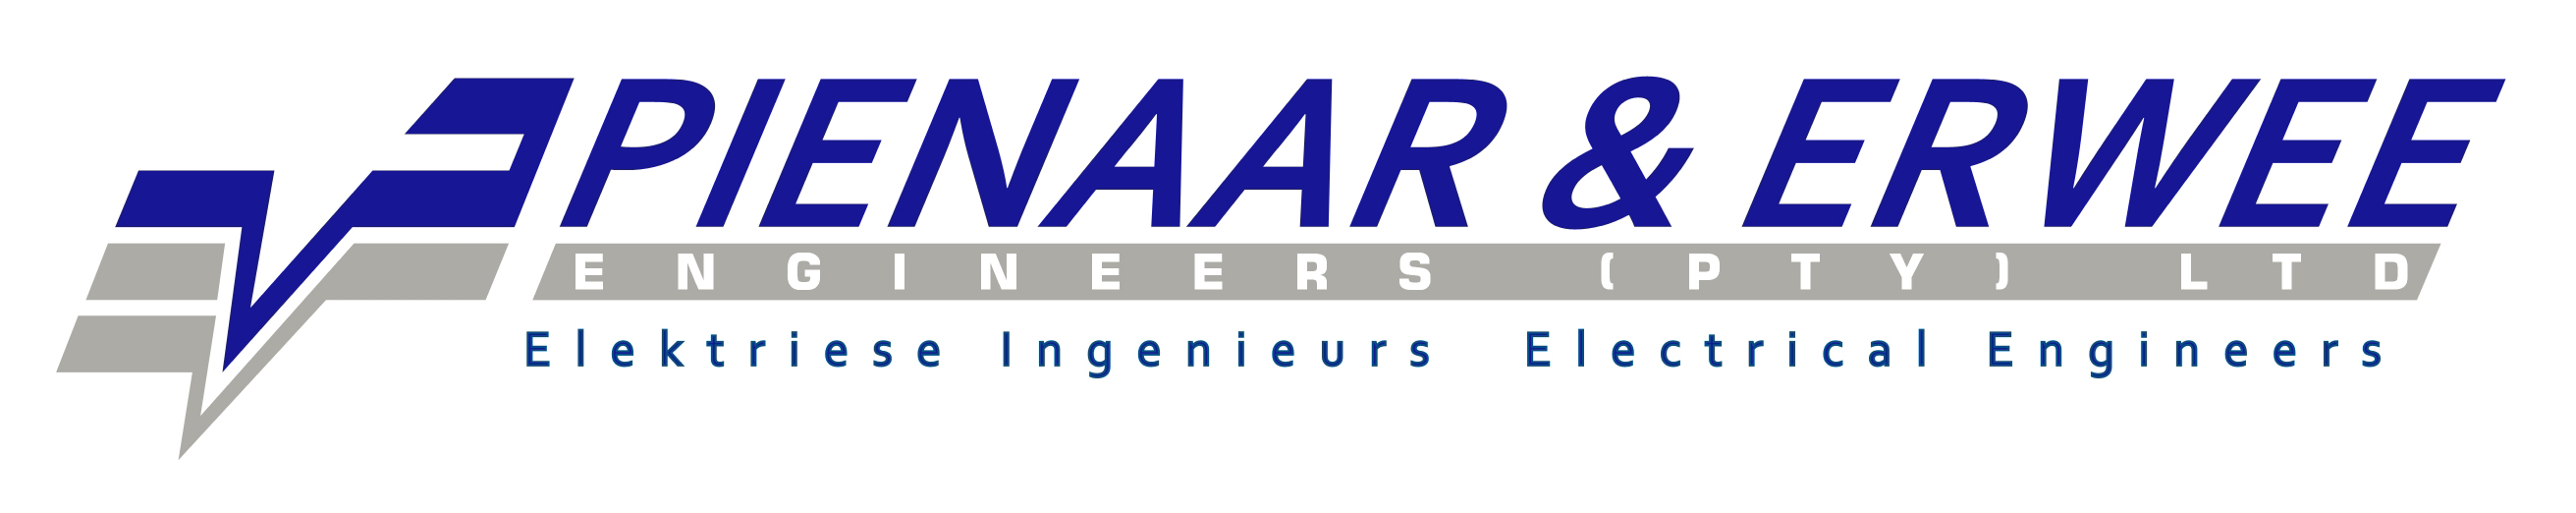 Pienaar & Erwee Engineers